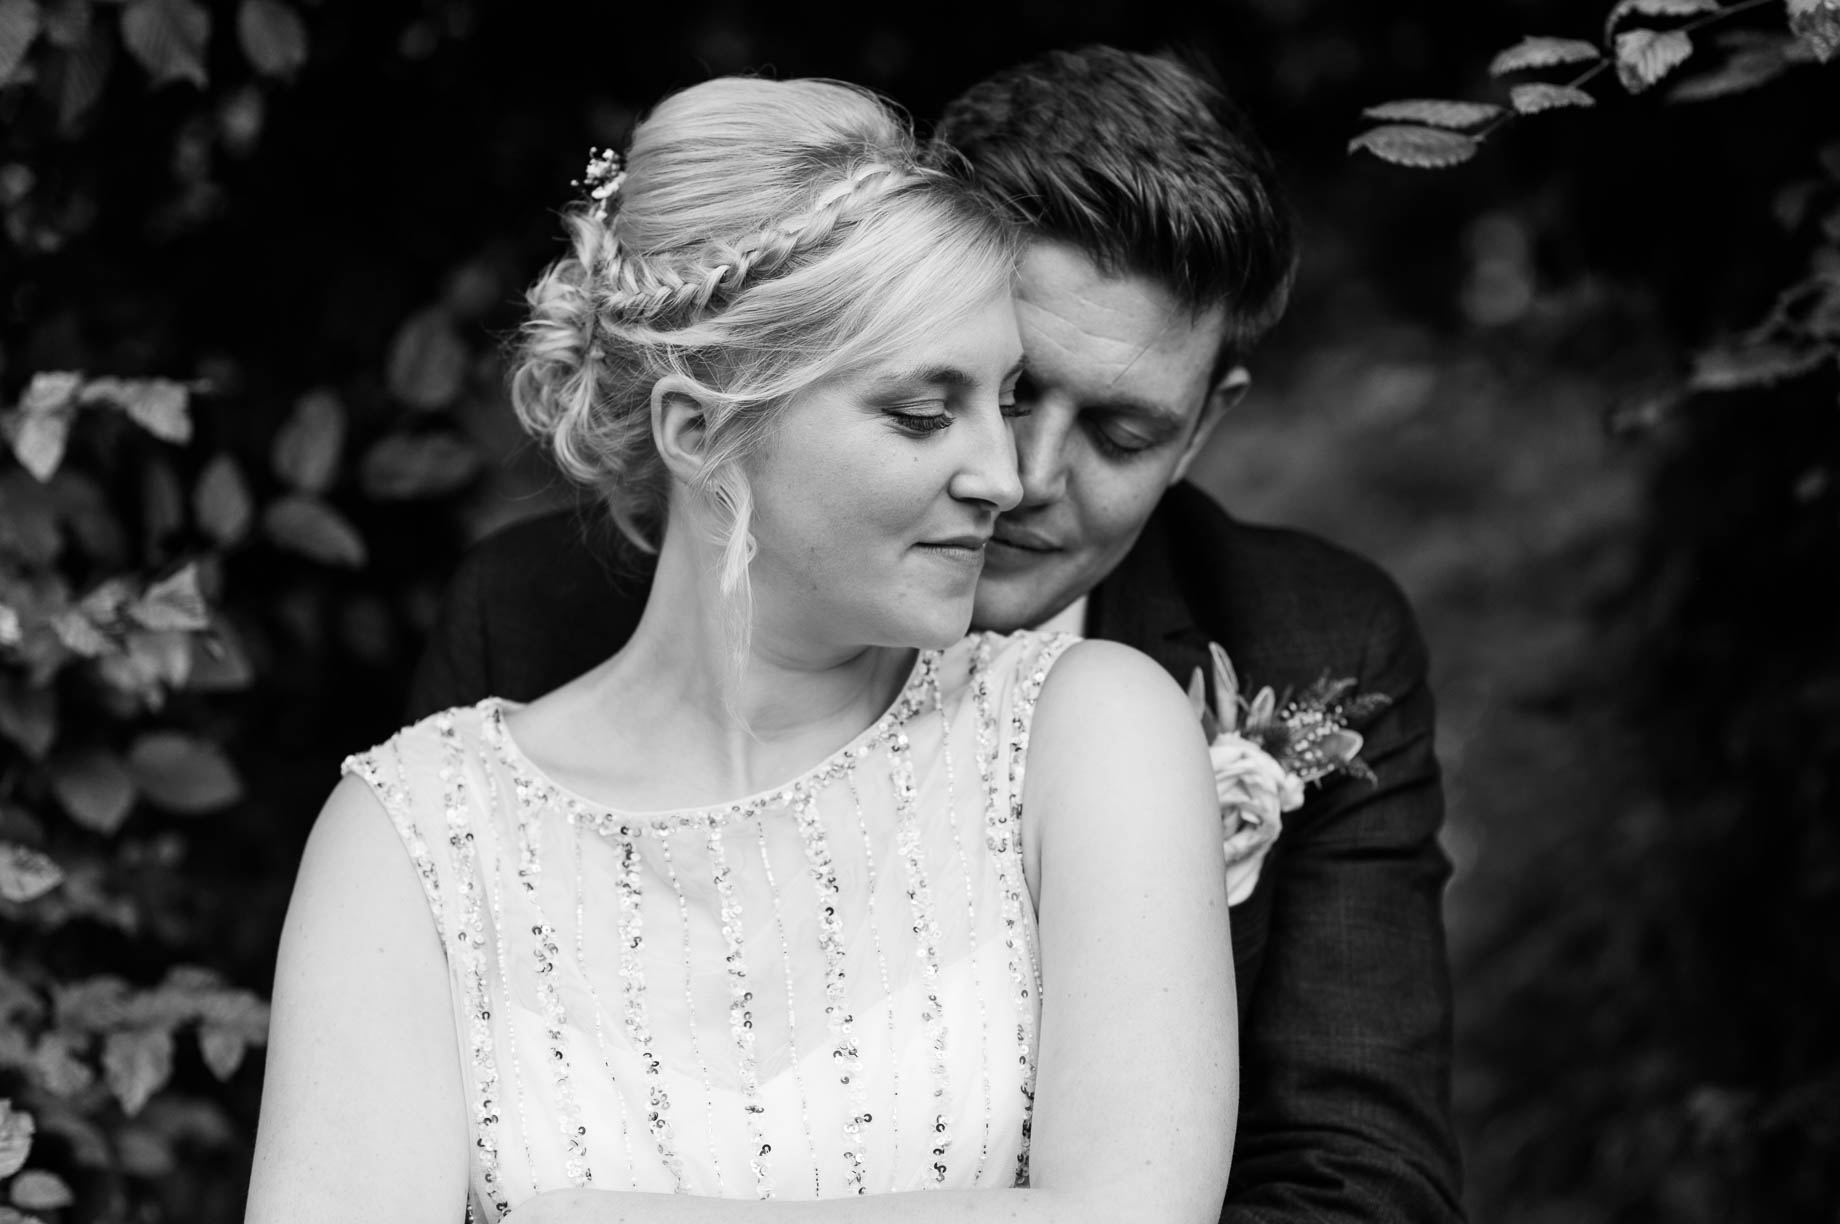 Recommended Norwich wedding photographer